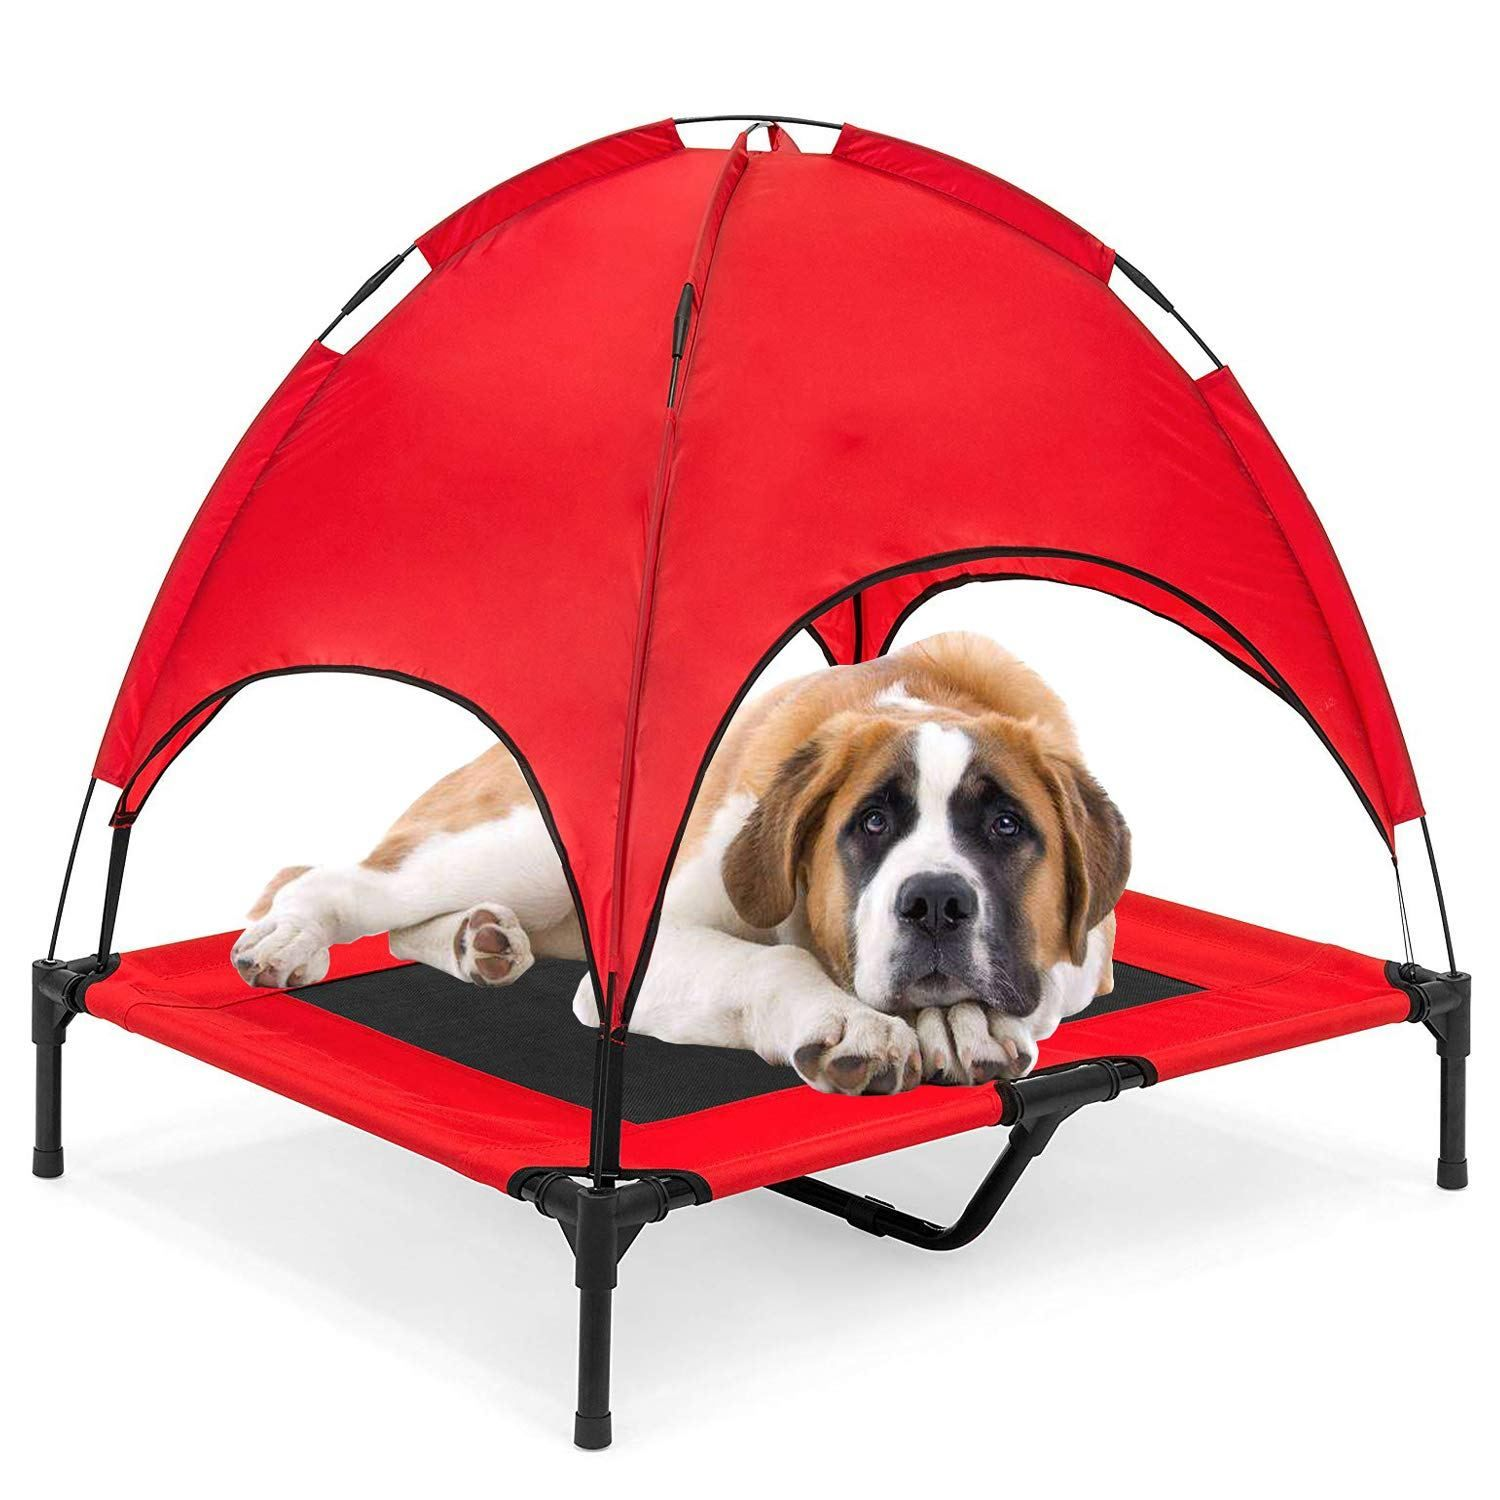 Reliancer 30 36 48 Xlarge Elevated Dog Cot With Canopy Shade 1680d Oxford Fabric Outdoor Pet Cat Cooling Bed Tent W Convenient Carrying Bag Indoor Sturdy Steel Frame Portable For Camping Beach Dog Cots Bed